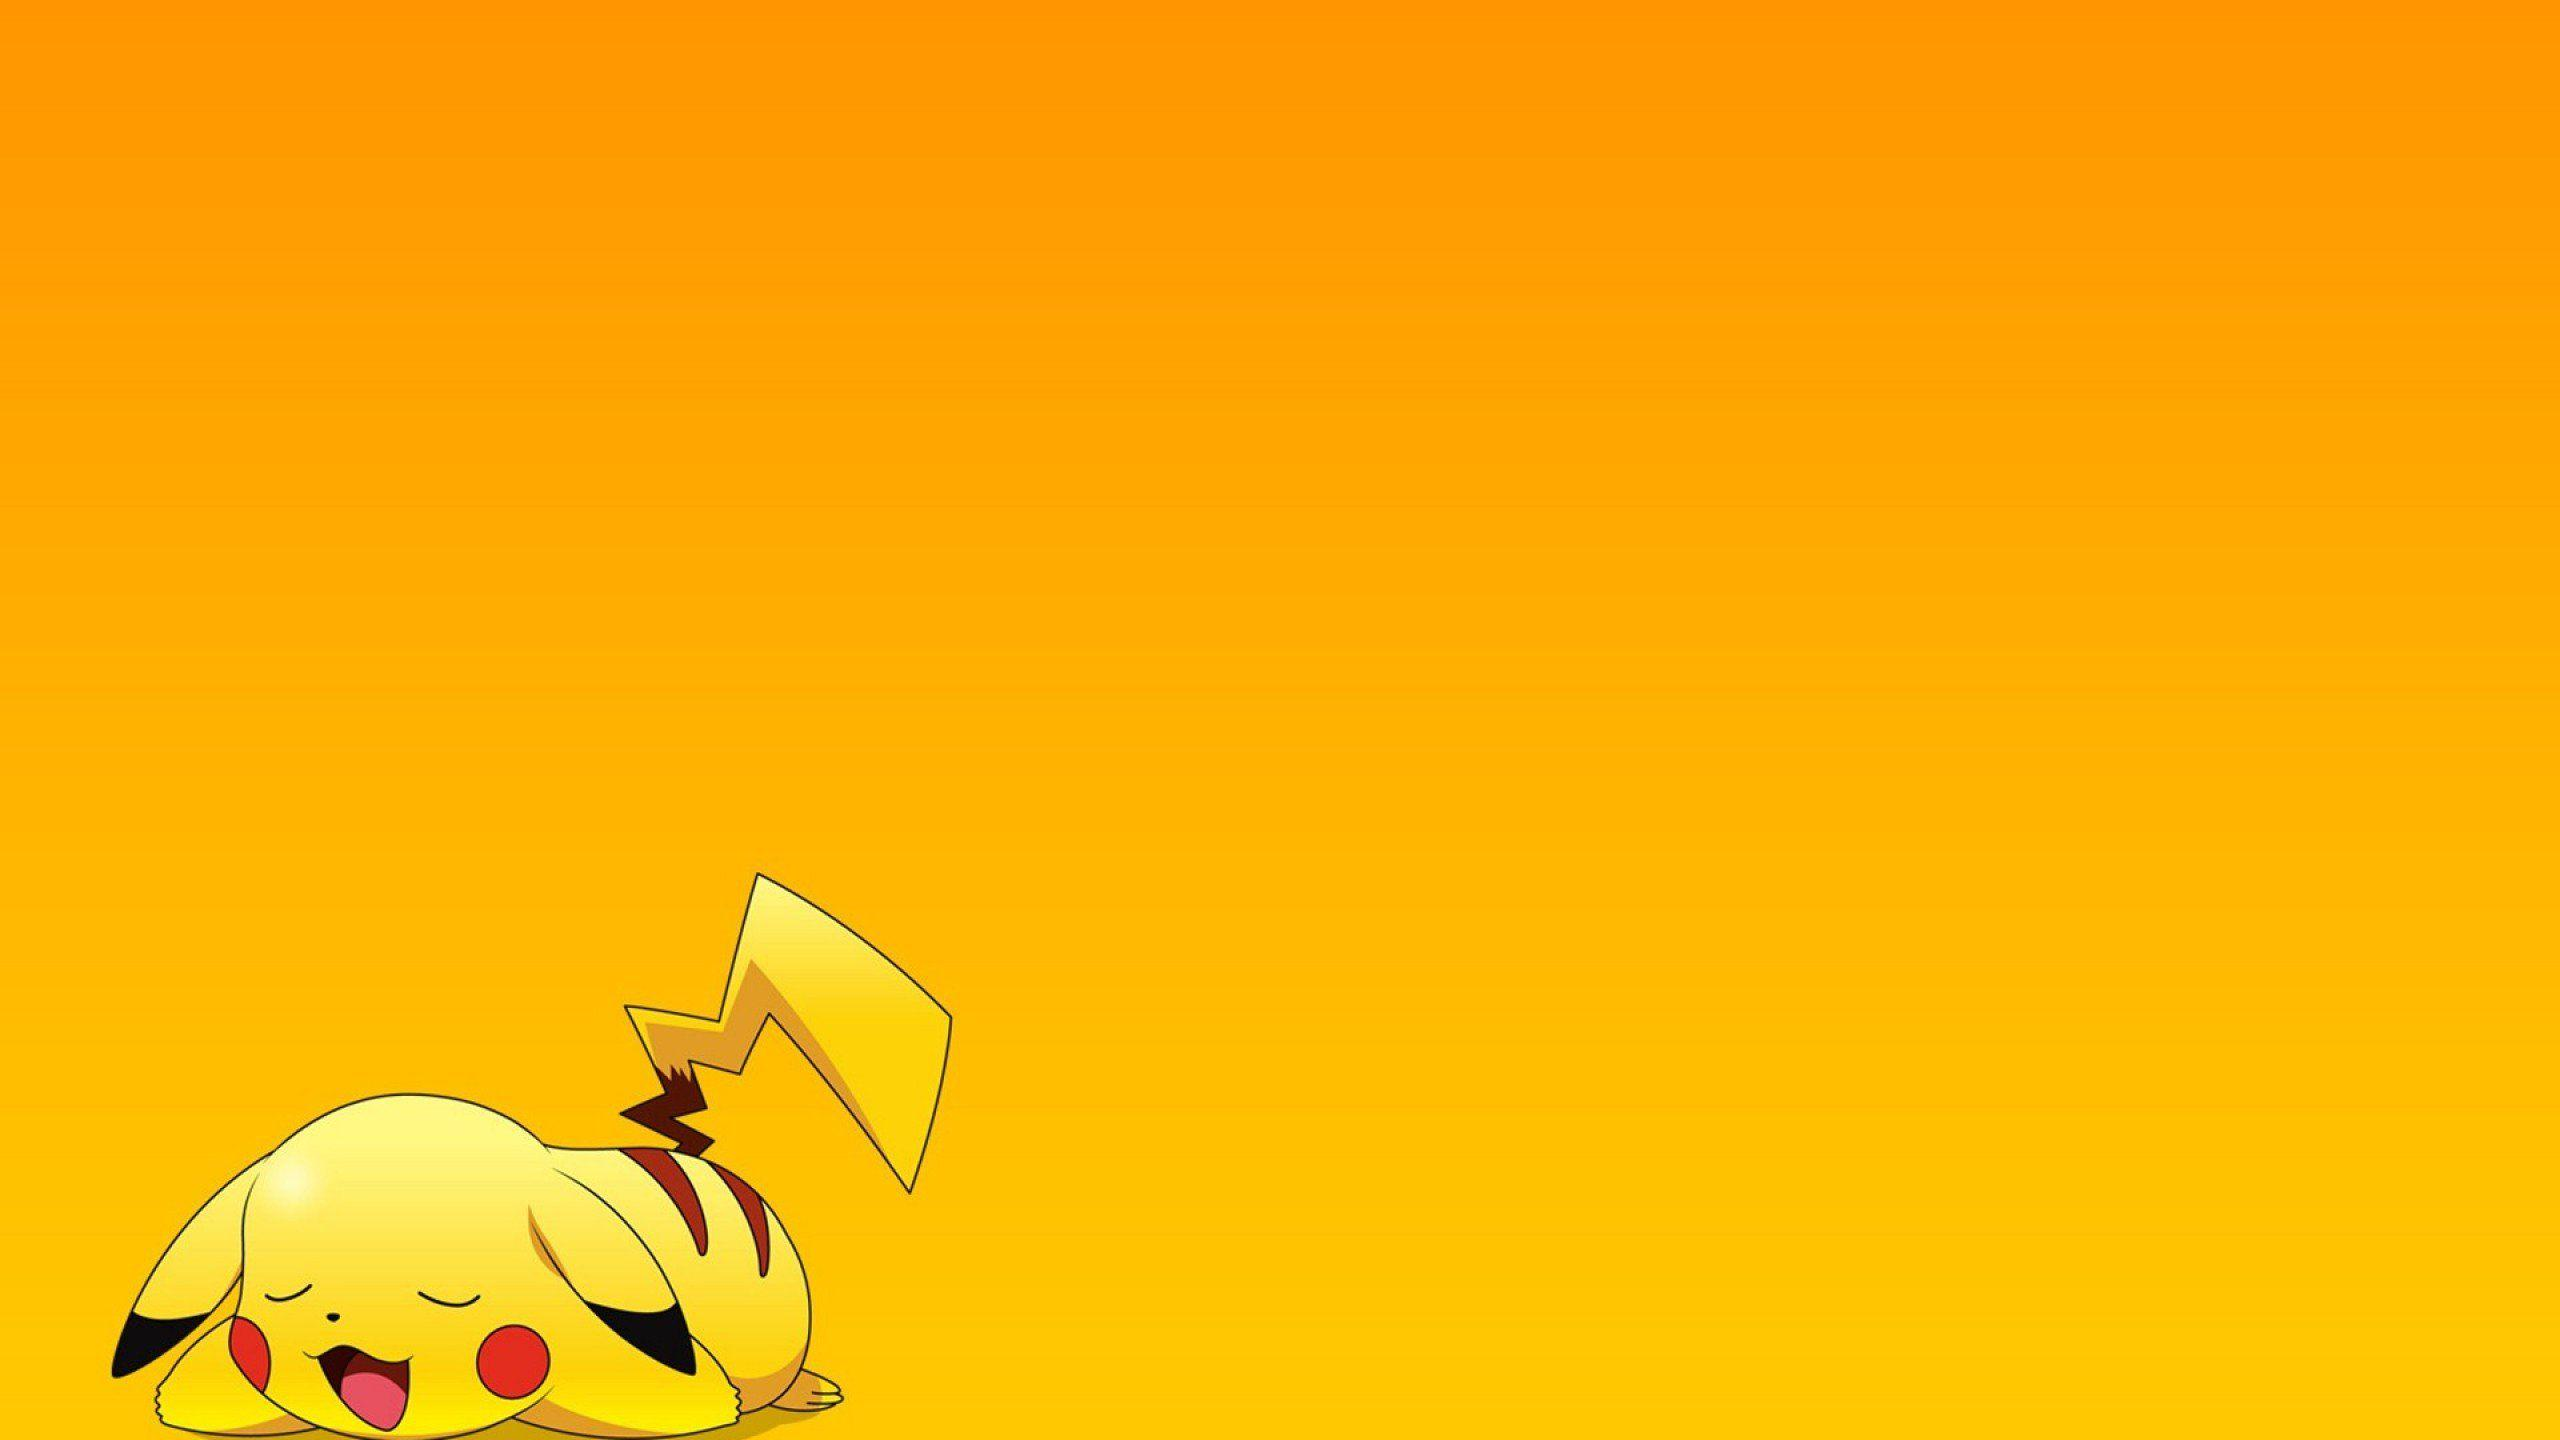 Pikachu HD Wallpapers Backgrounds Wallpaper | Wallpapers For ...